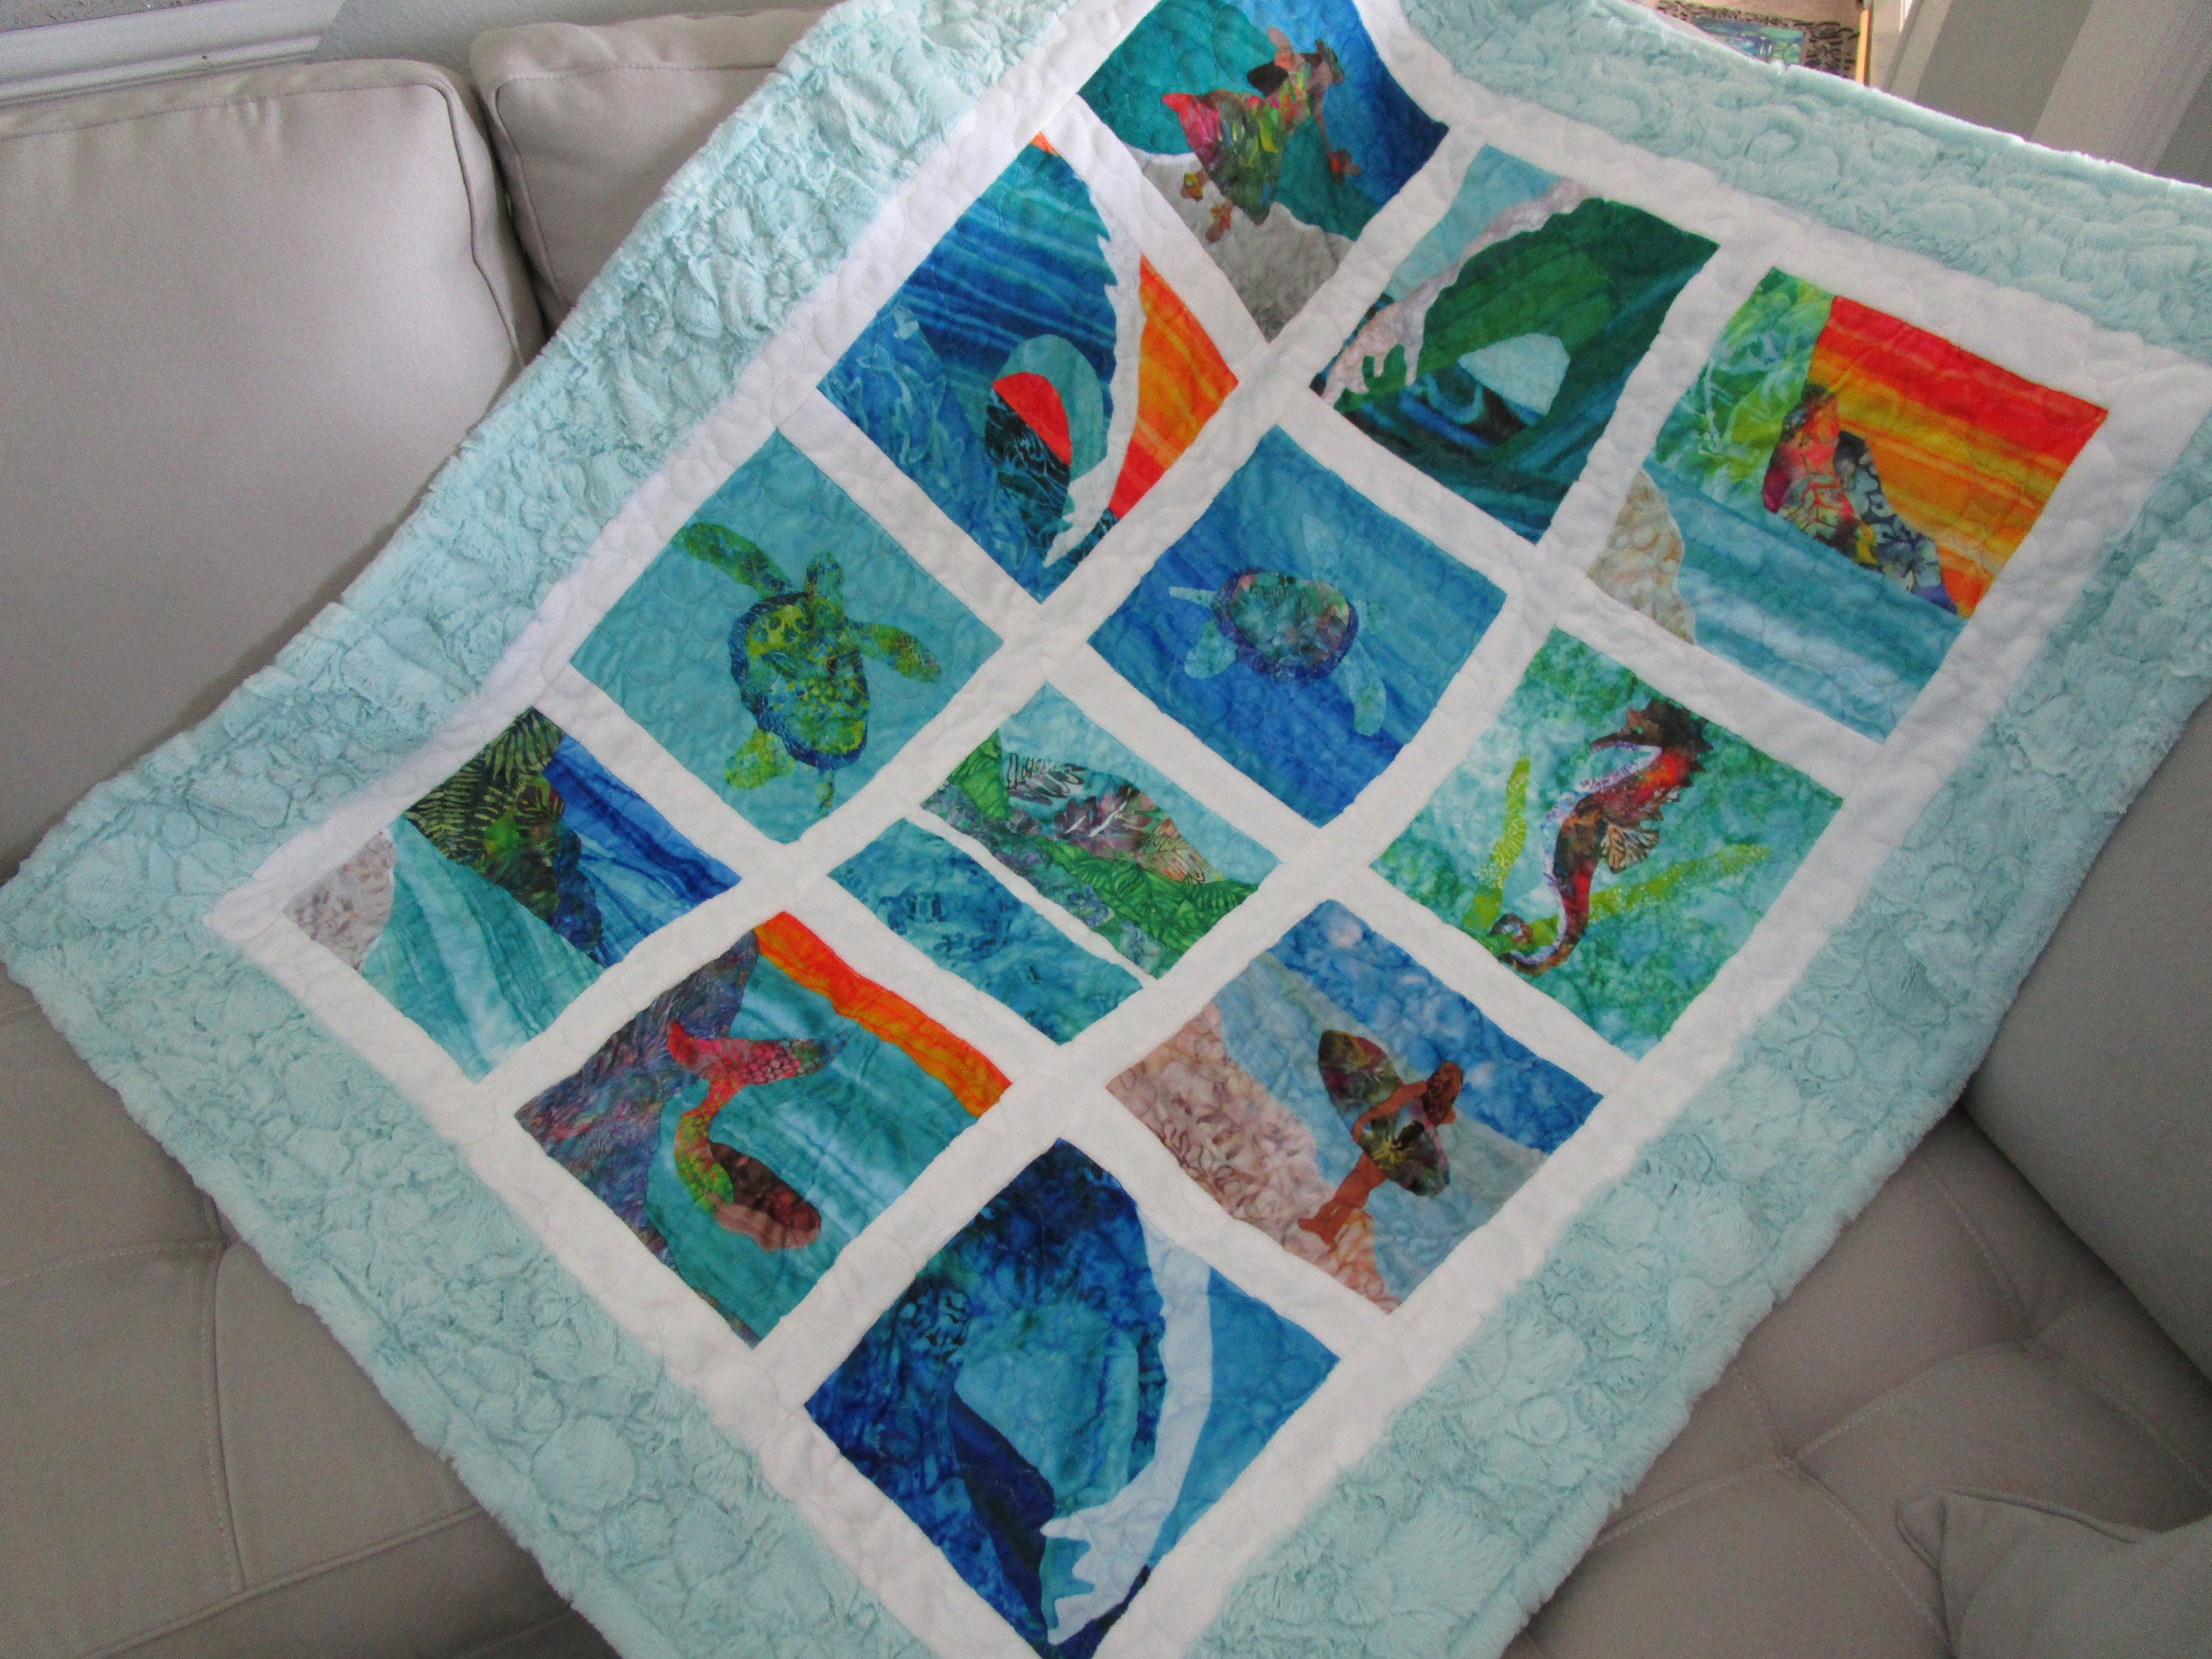 surfer girl beach ocean surfboard fabric quilt square panel